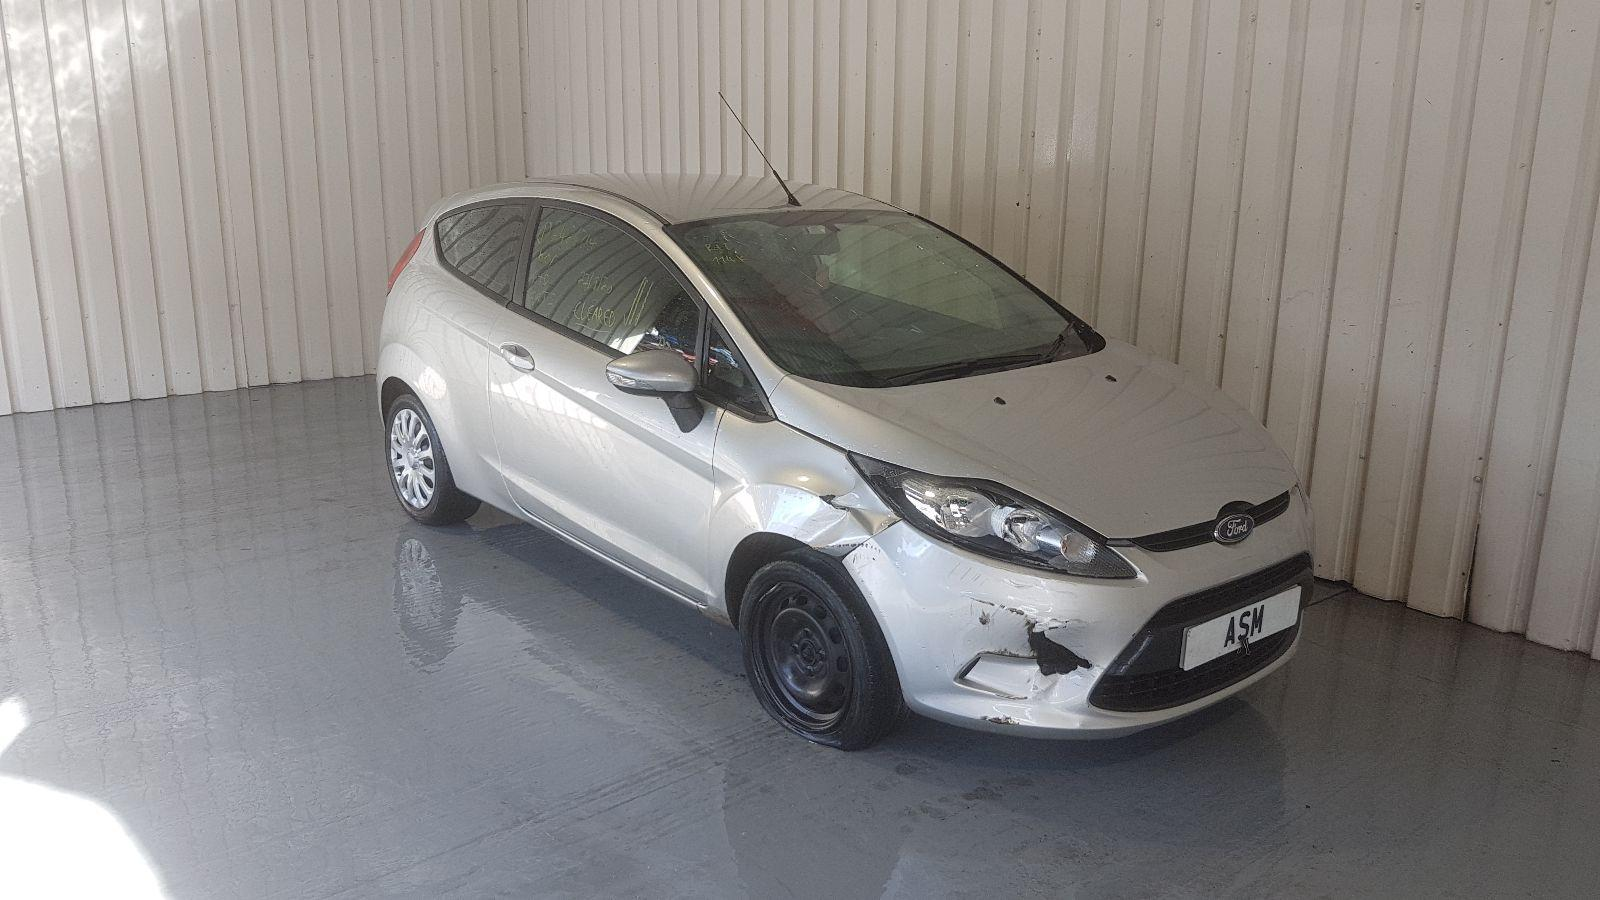 Image for a Ford Fiesta 2012 3 Door Hatchback